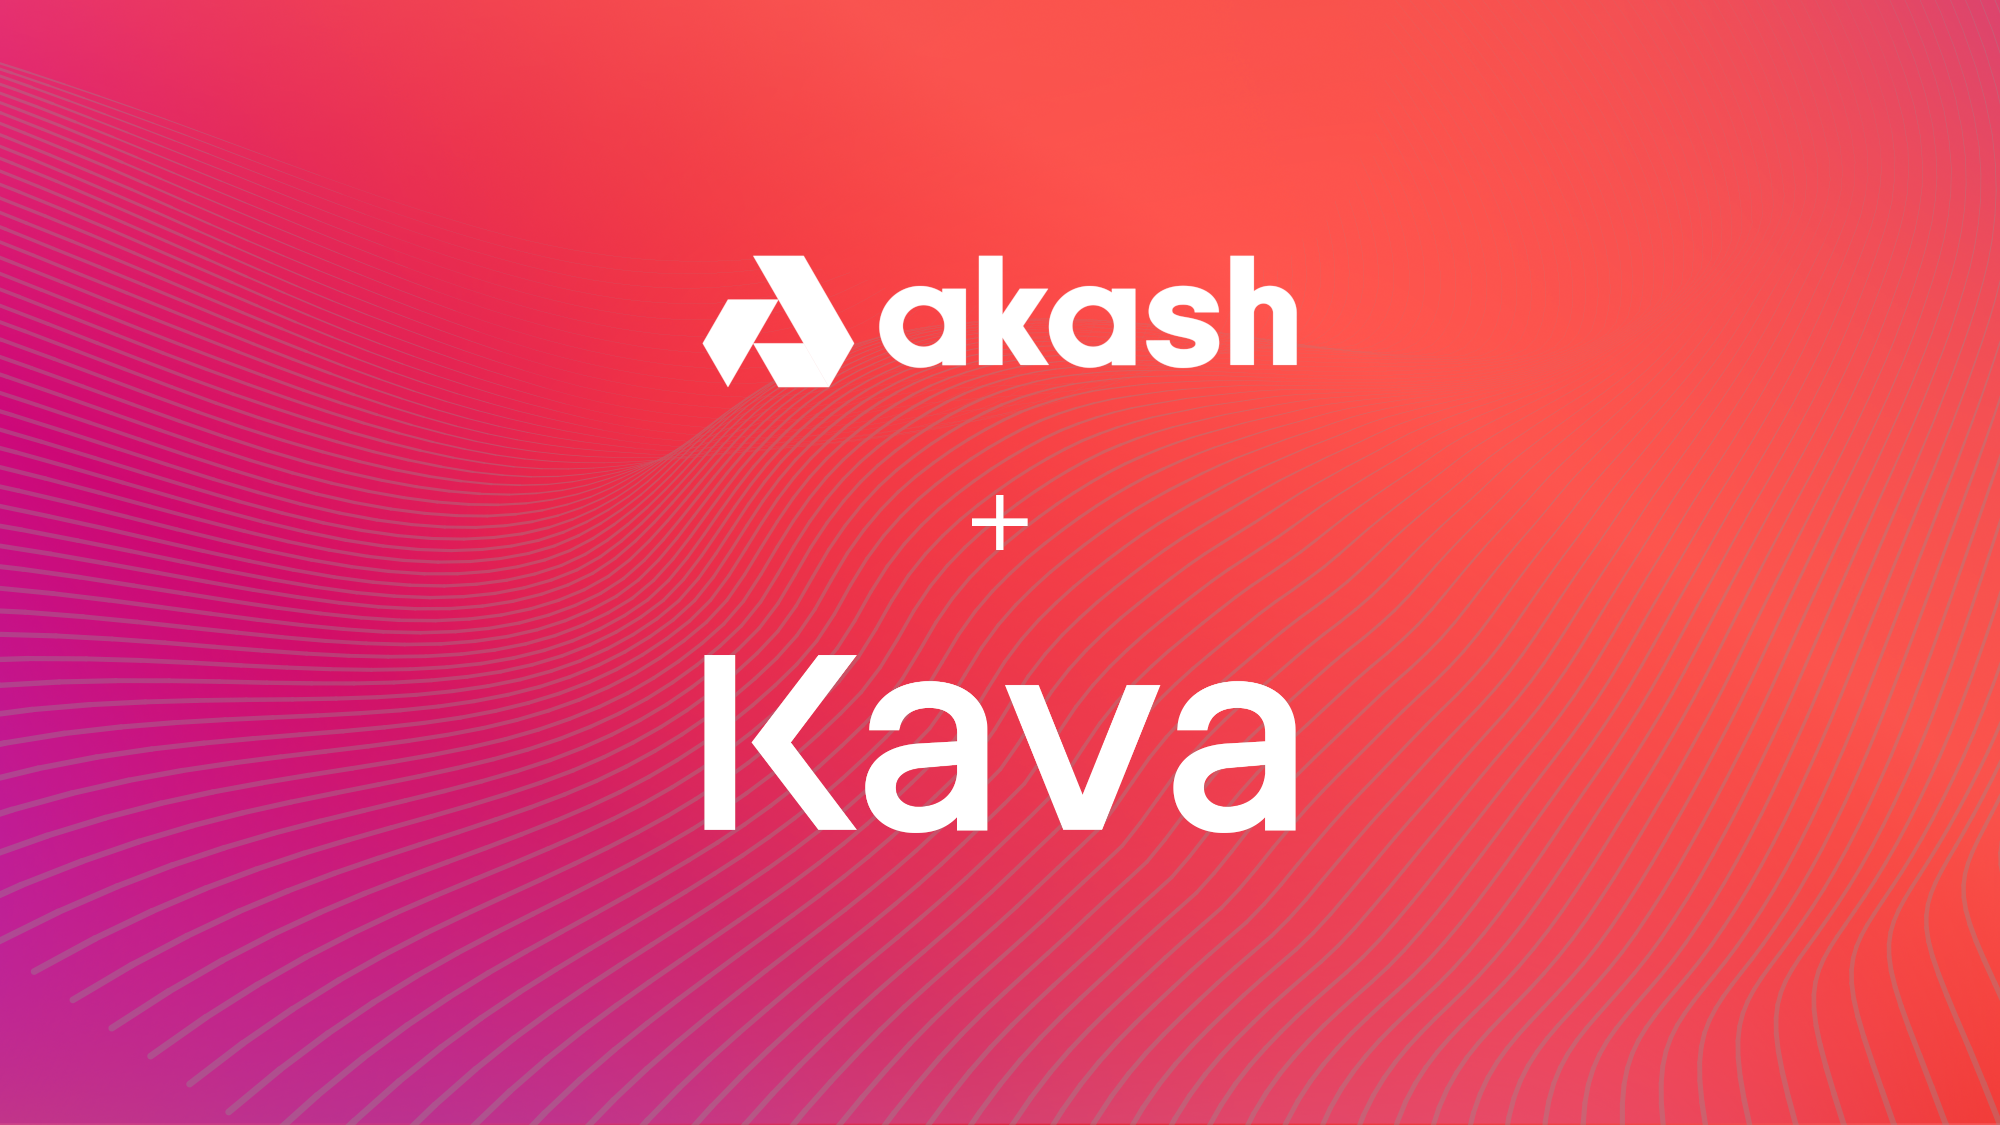 Akash Network Partners with Kava Labs to Provide Decentralized Hosting for the Kava Ecosystem